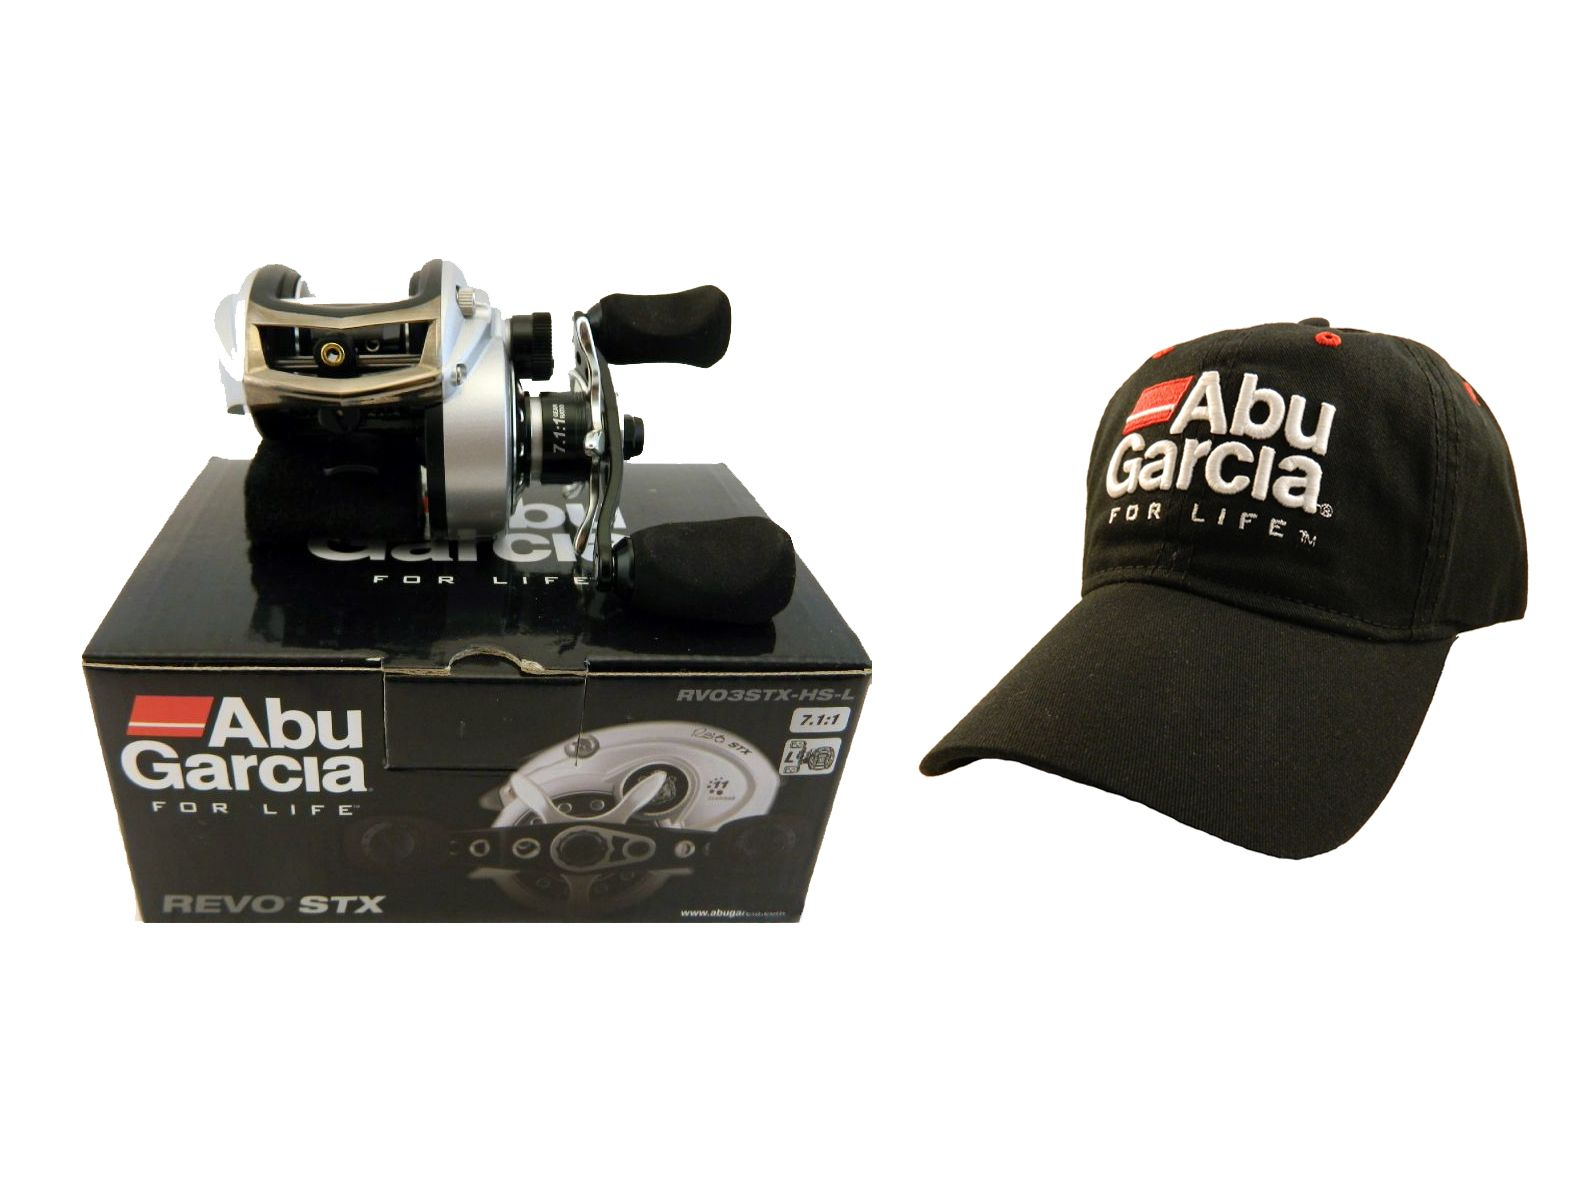 We are currently offering a Free Abu Garcia Cap shipped in